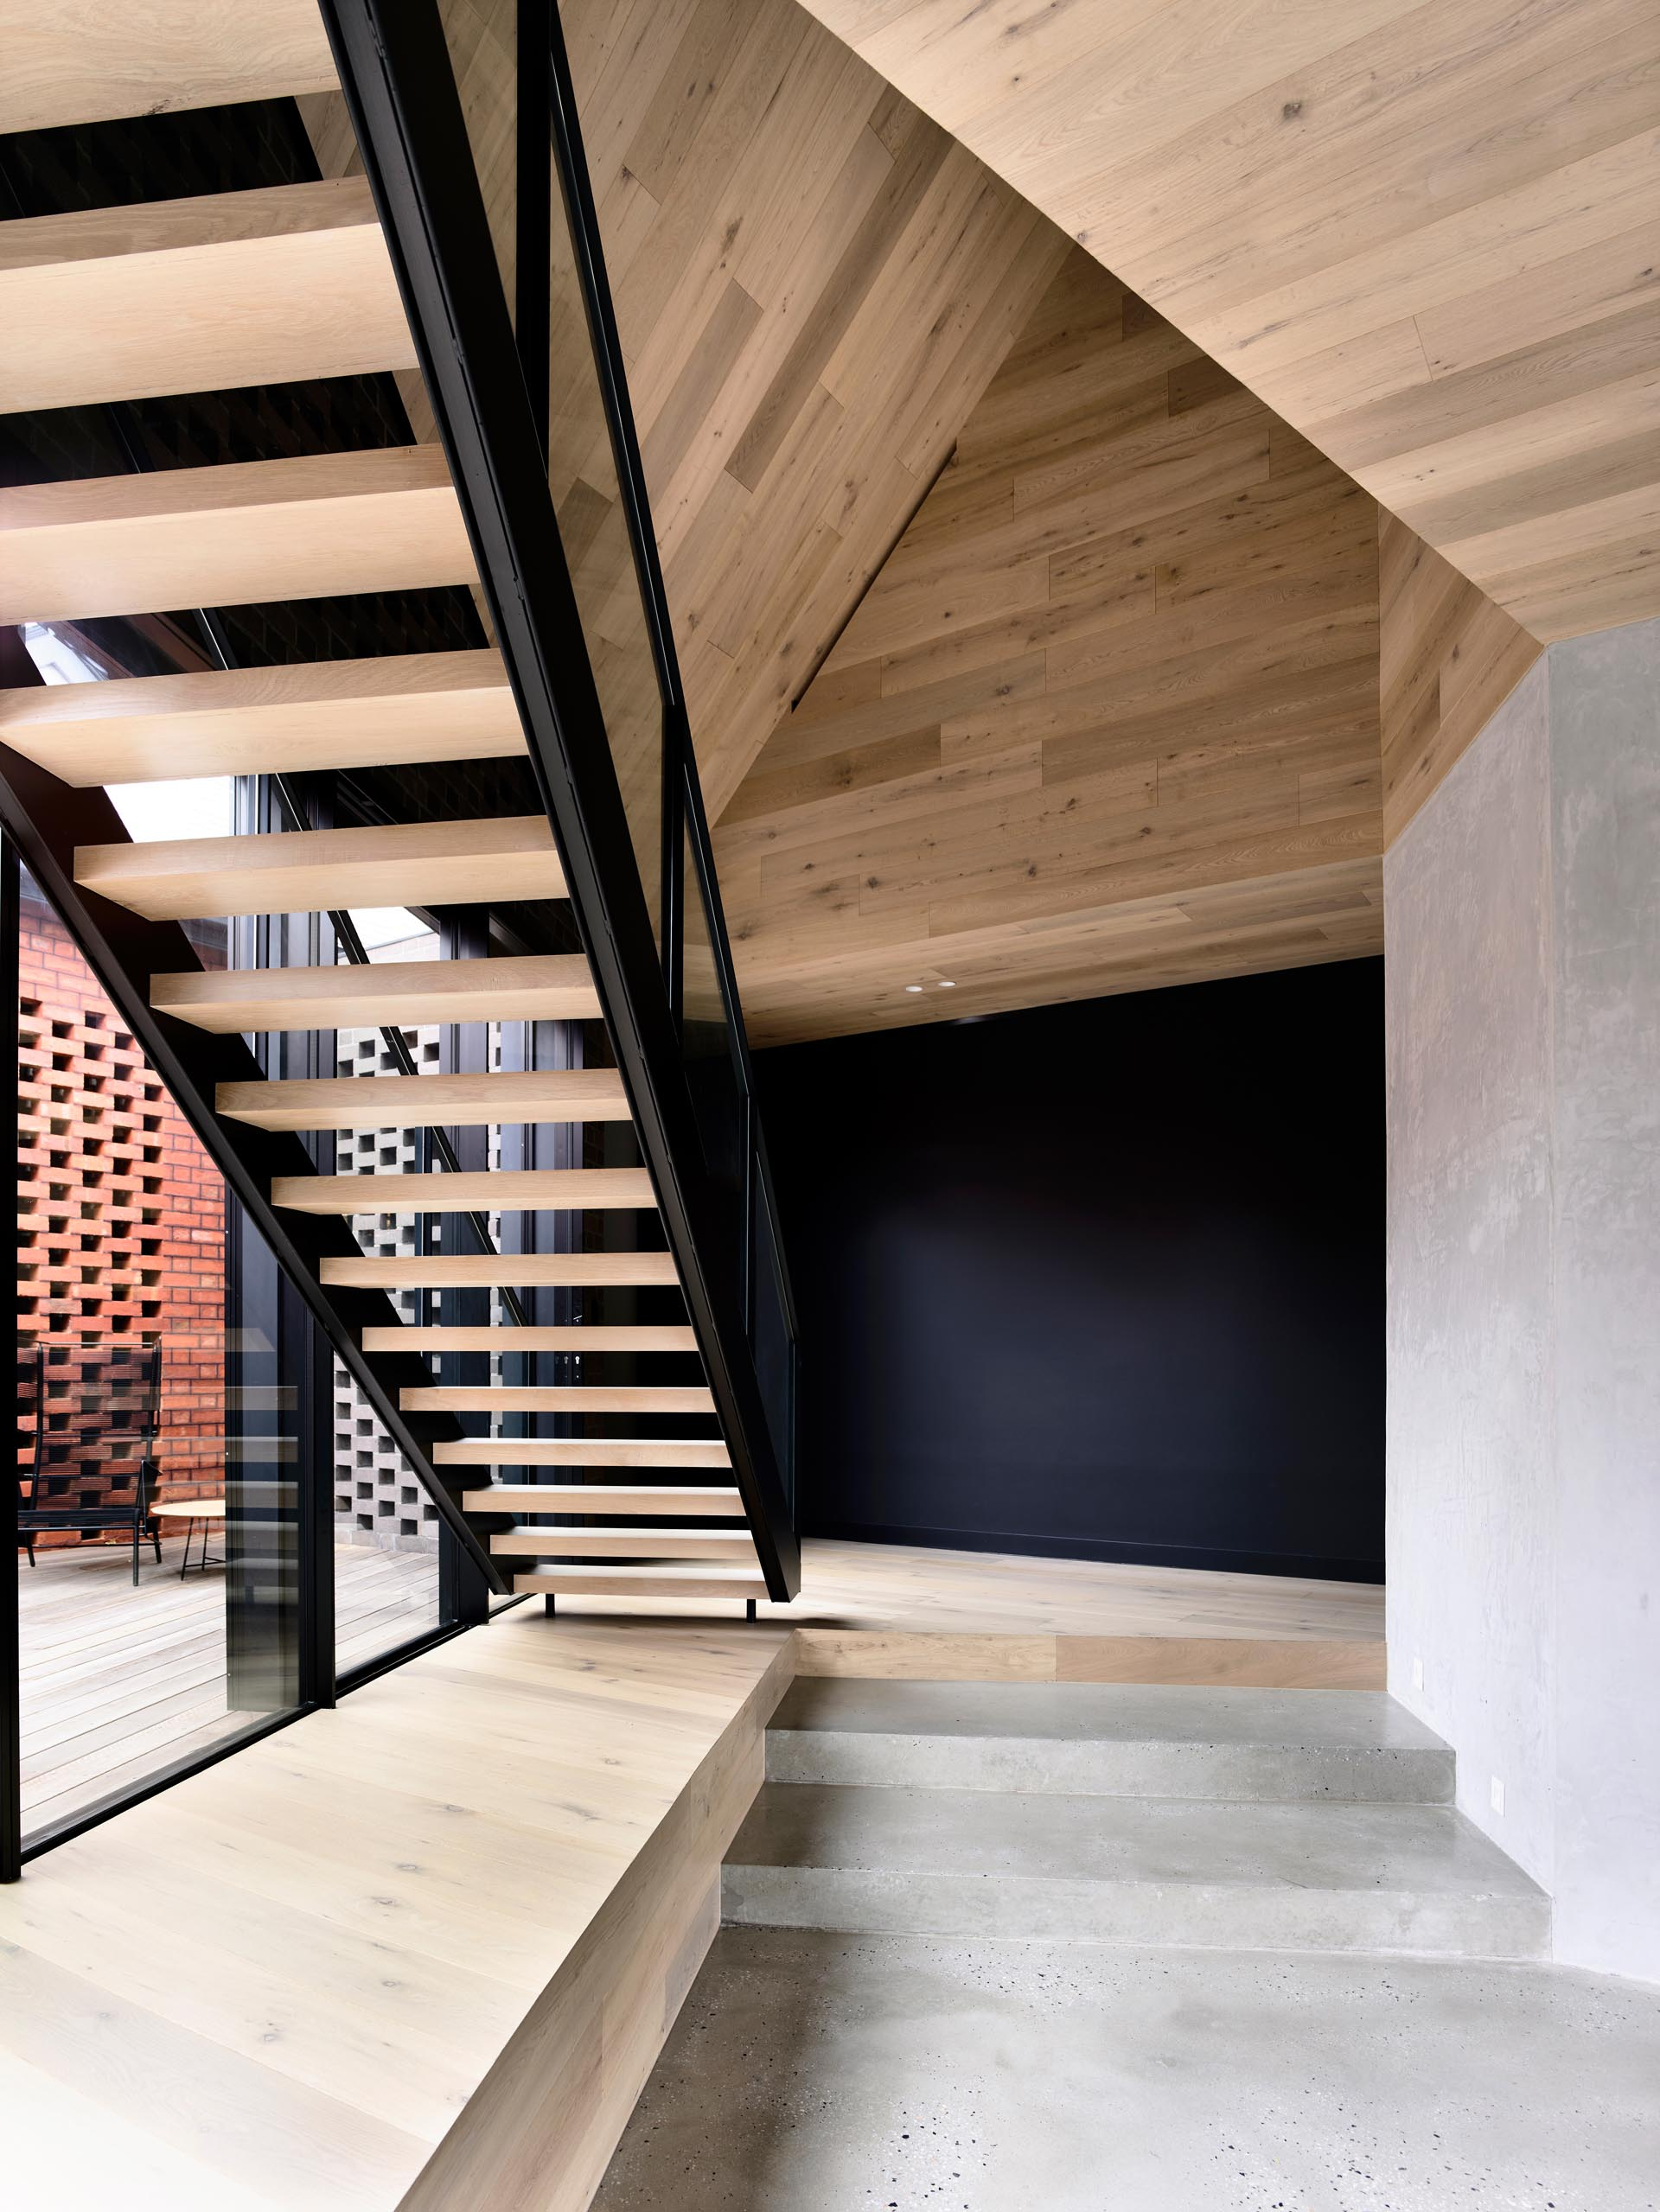 A modern sculptural wood, steel, and glass staircase which is set under a folding origami, timber-lined ceiling.